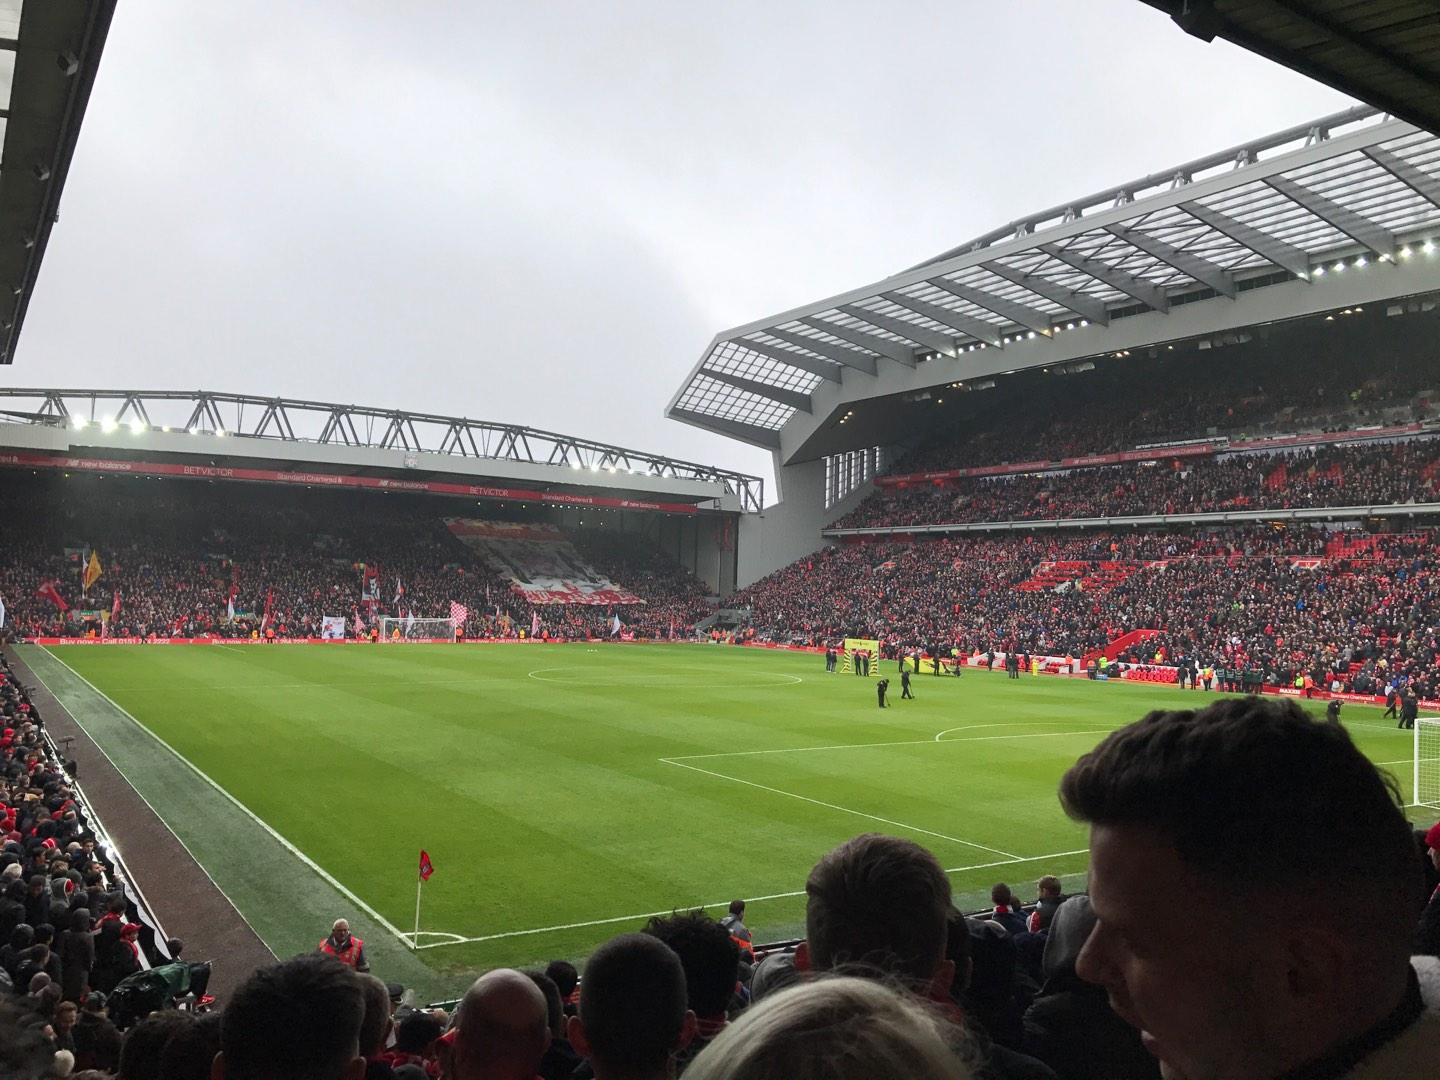 Anfield Section 127 Row 20 Seat 193